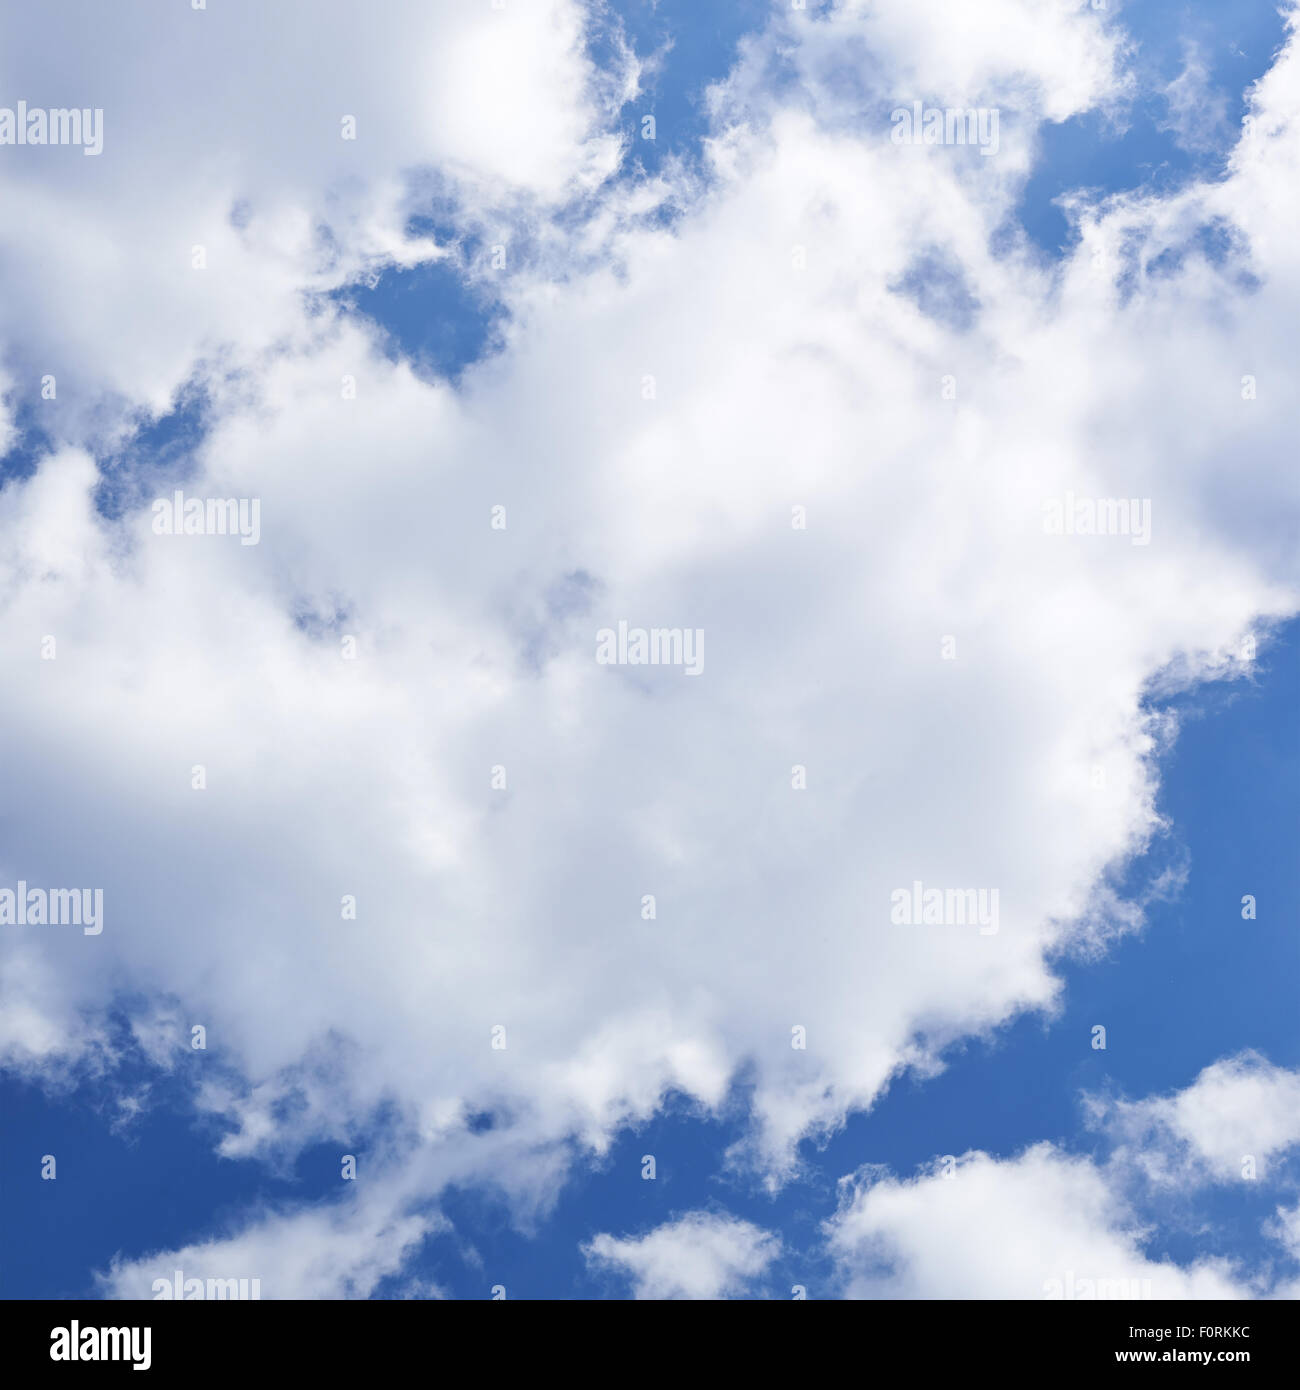 Cloudy sky composition - Stock Image